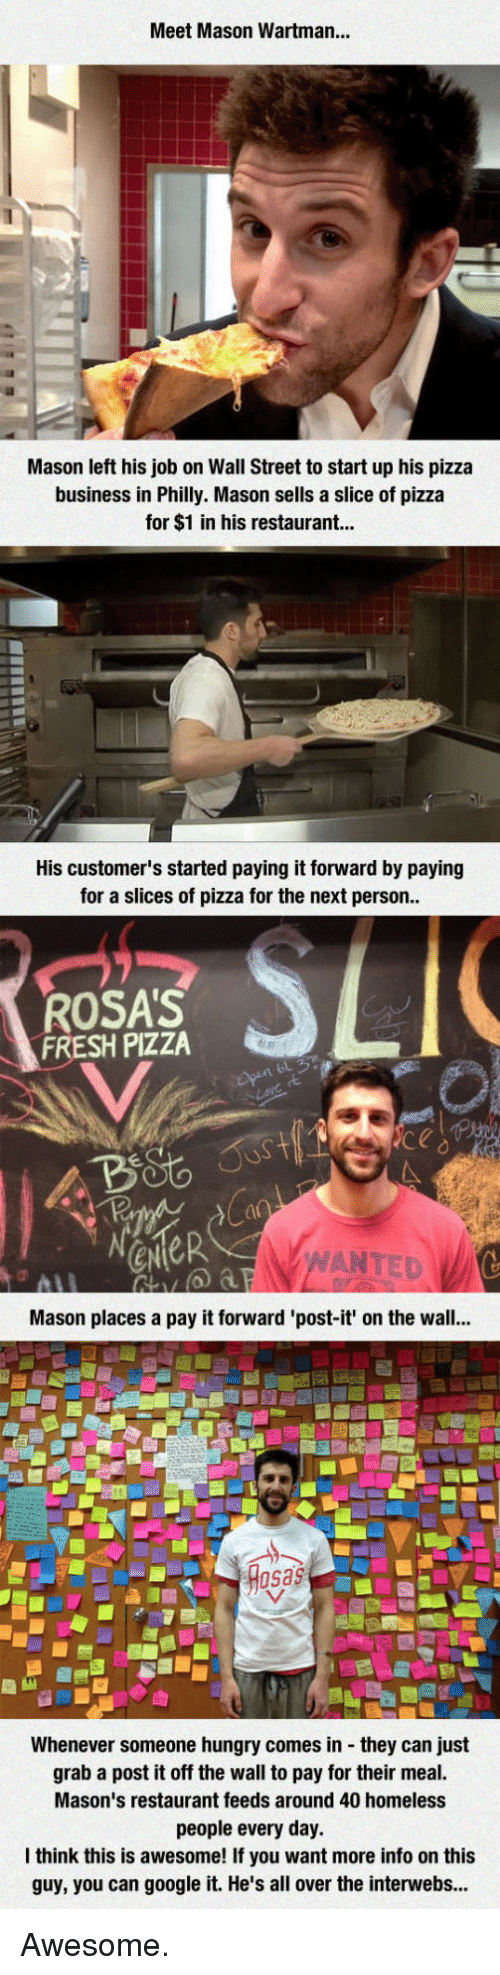 sas: Meet Mason Wartman...  Mason left his job on Wall Street to start up his pizza  business in Philly. Mason sells a slice of pizza  for $1 in his restaurant...  His customer's started paying it forward by paying  for a slices of pizza for the next person  ROSA'S  FRESH PIZZA  ANTED  Mason places a pay it forward 'post-it' on the wall...  sas  Whenever someone hungry comes in they can just  grab a post it off the wall to pay for their meal.  Mason's restaurant feeds around 40 homeless  people every day.  think this is awesome! If you want more info on this  guy, you can google it. He's all over the interwebs... Awesome.